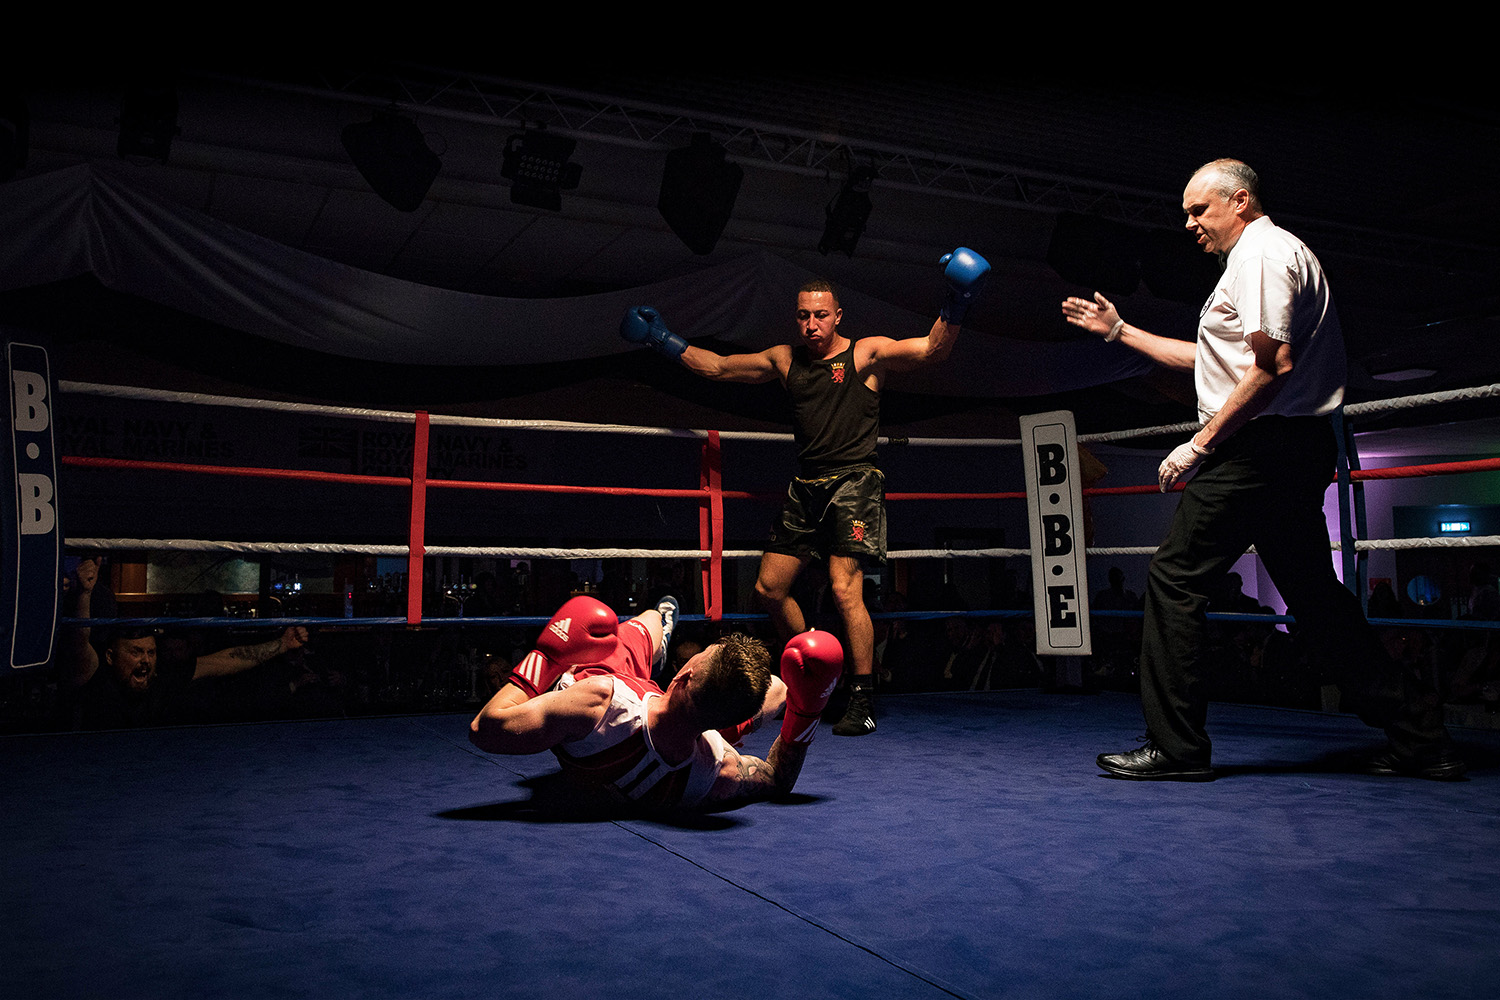 Lords of the Rings as service boxers raise thousands for charity